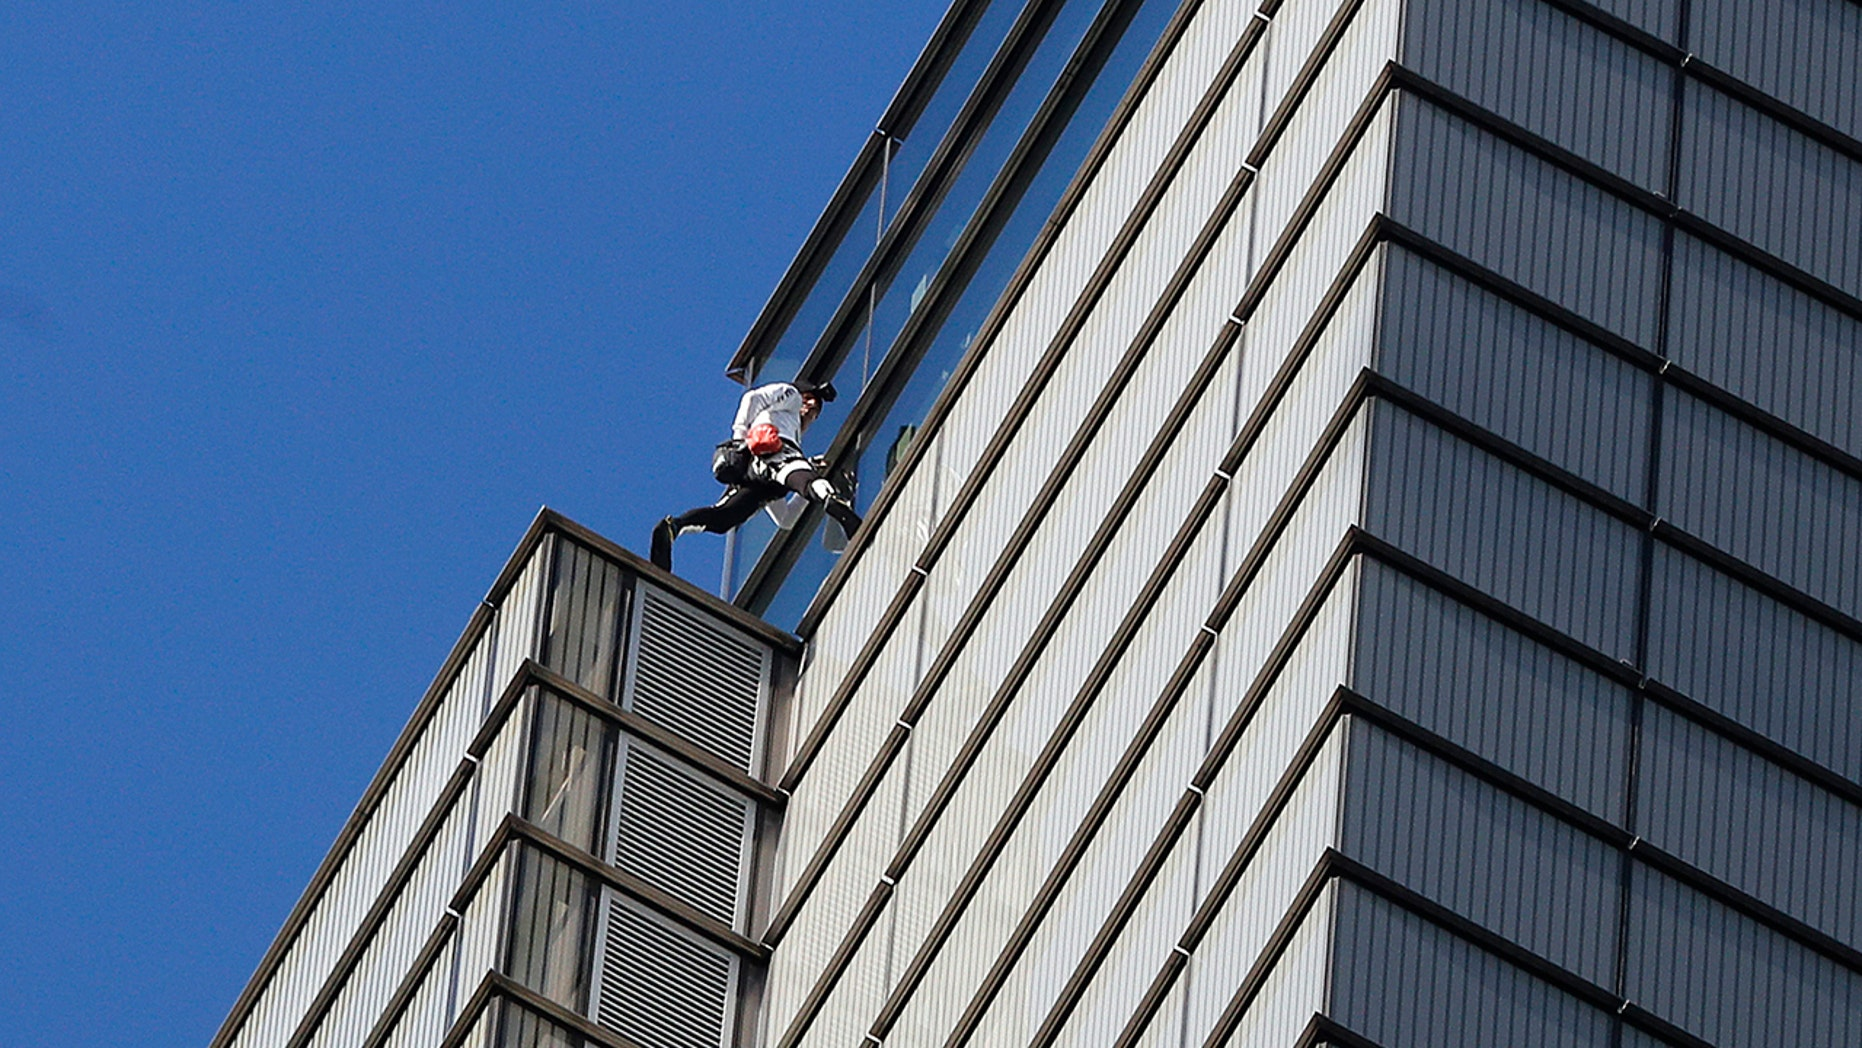 French Spider Man Arrested After Scaling London S Heron Tower